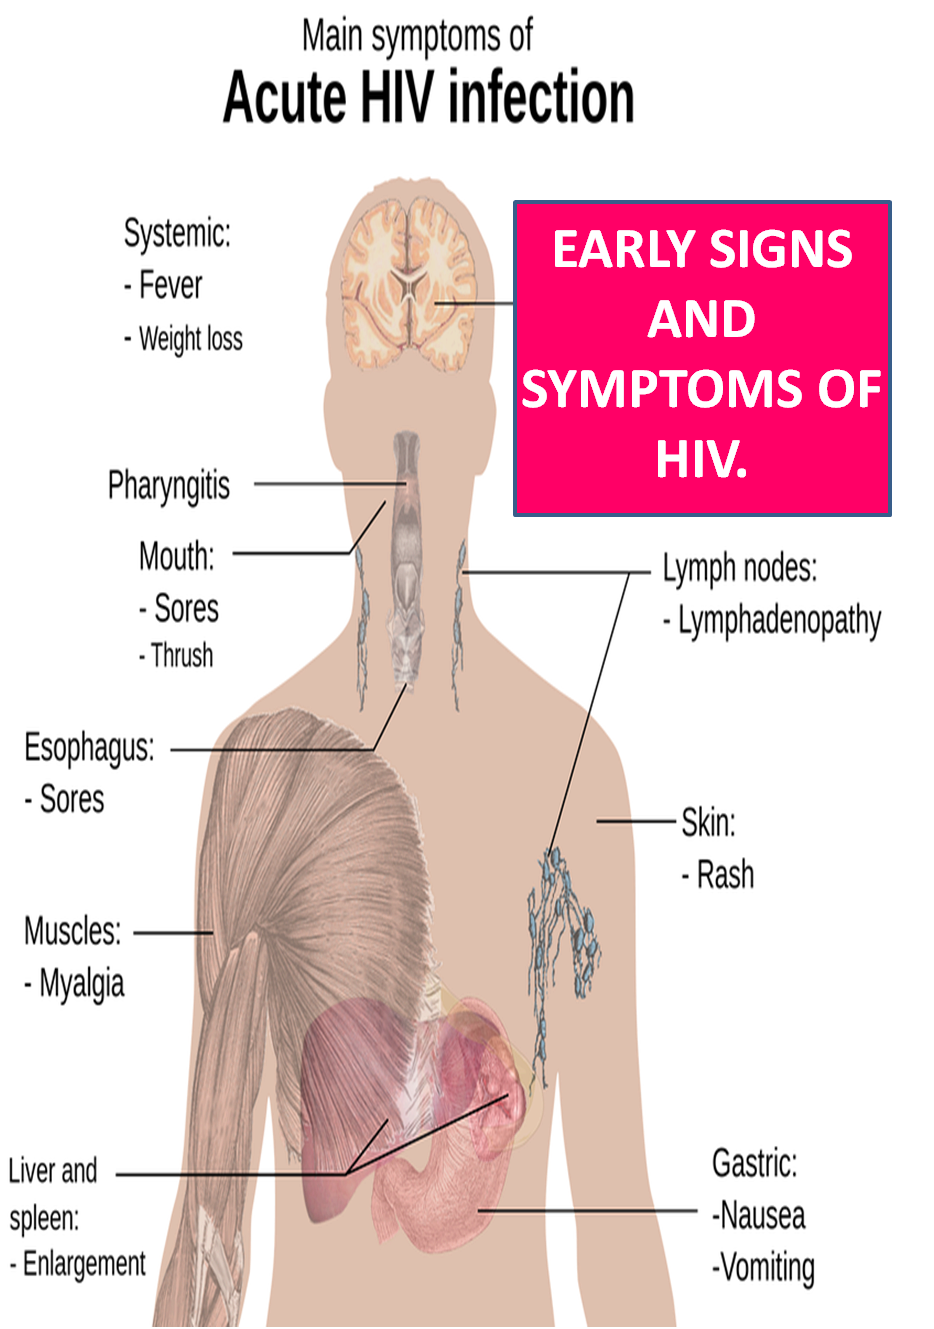 heavy signs and symptoms of hiv in an early stage [ 934 x 1329 Pixel ]